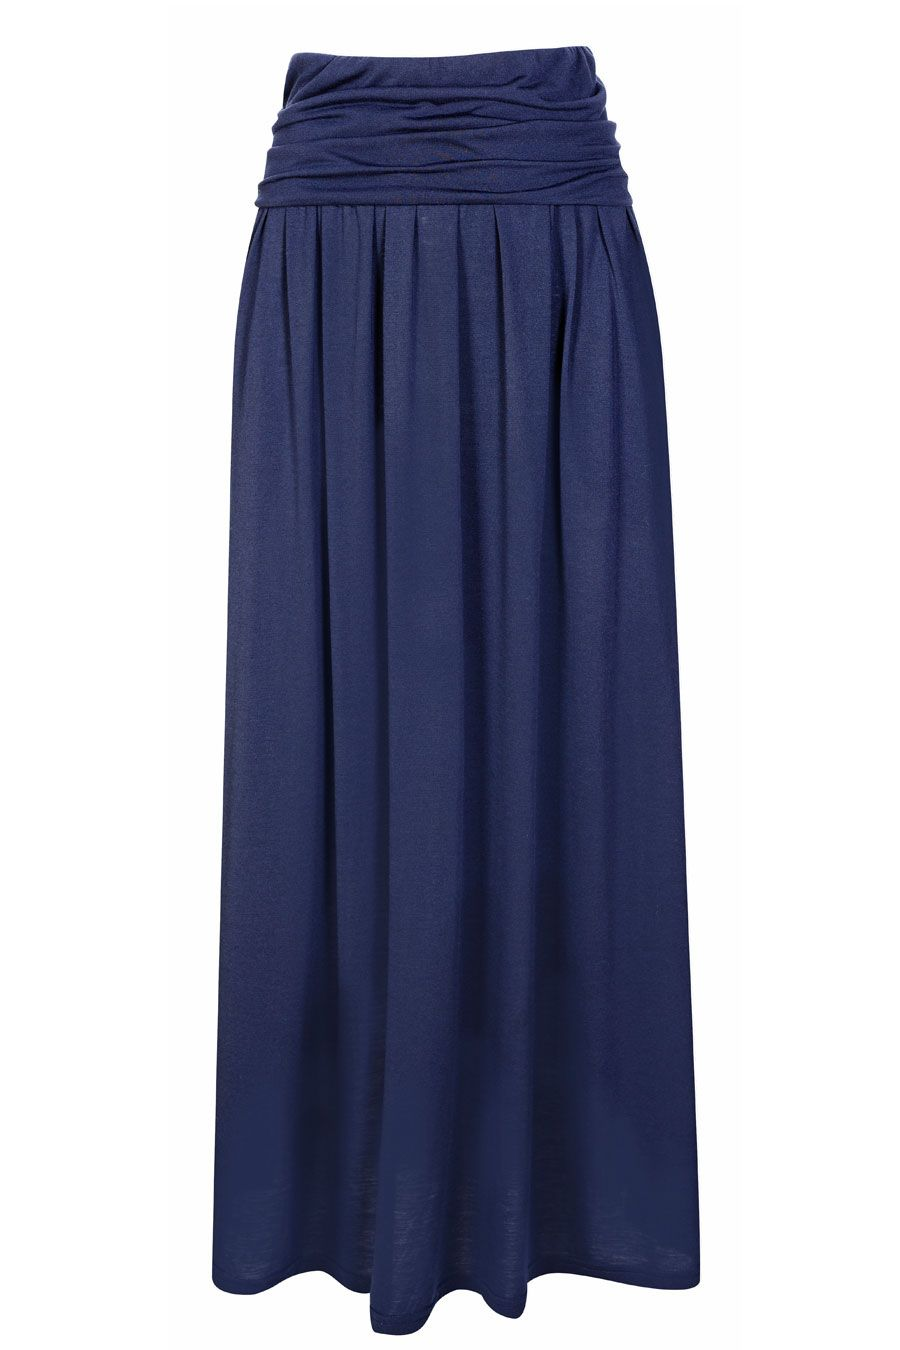 Maxi Skirt. Just as good for sitting at your desk as lounging in ...